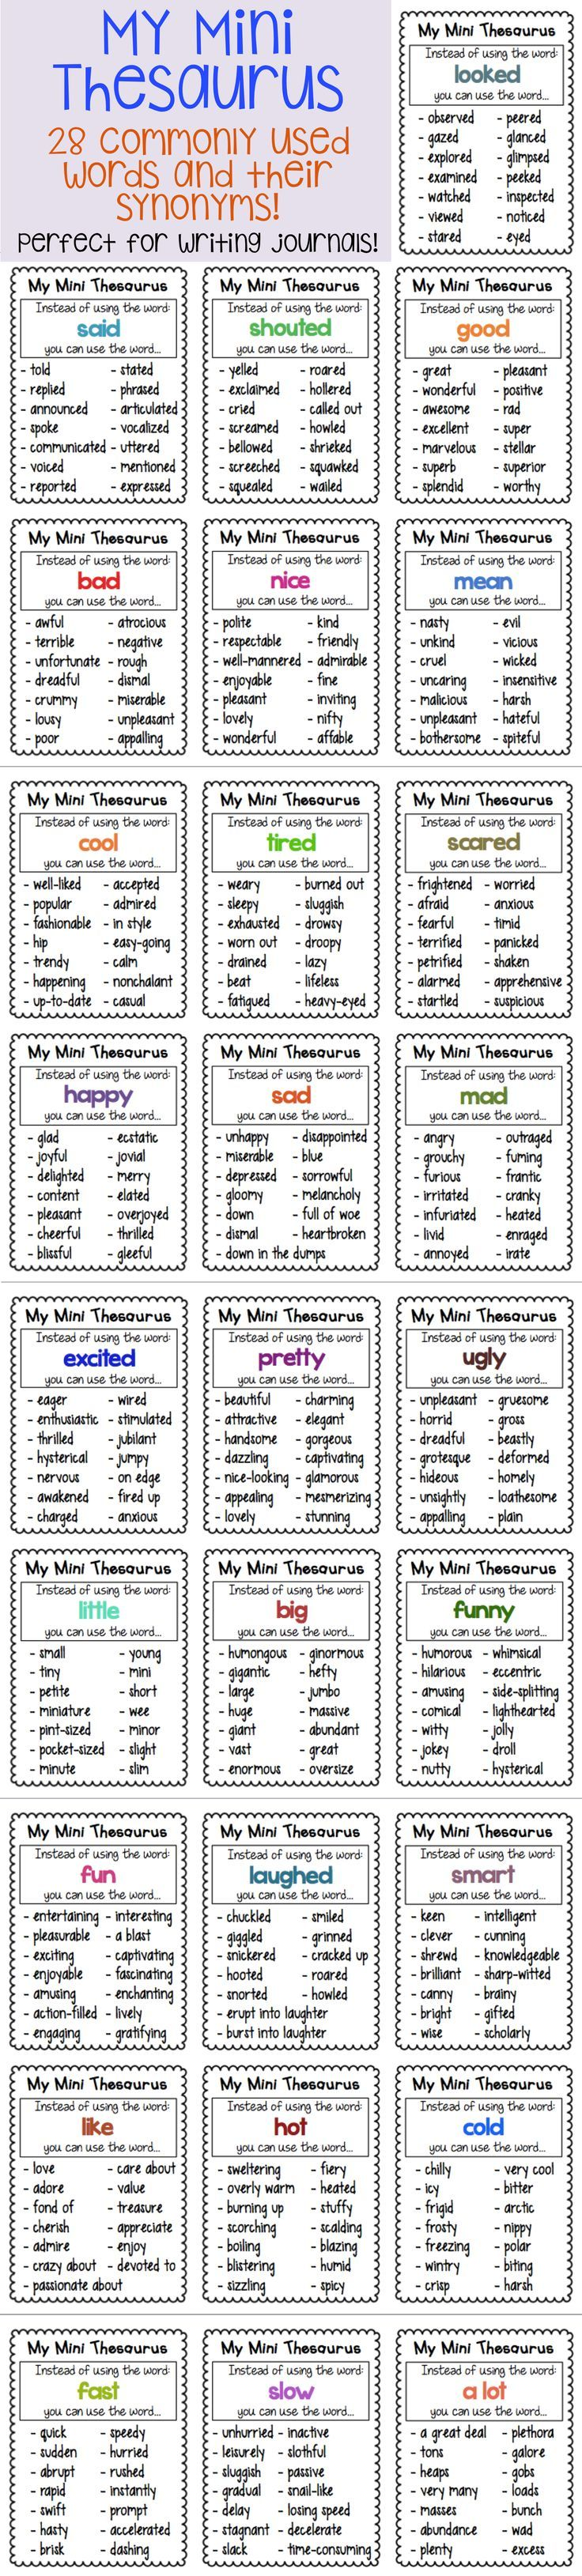 Thesaurus Charts Synonyms For Common Words Chart Journal And